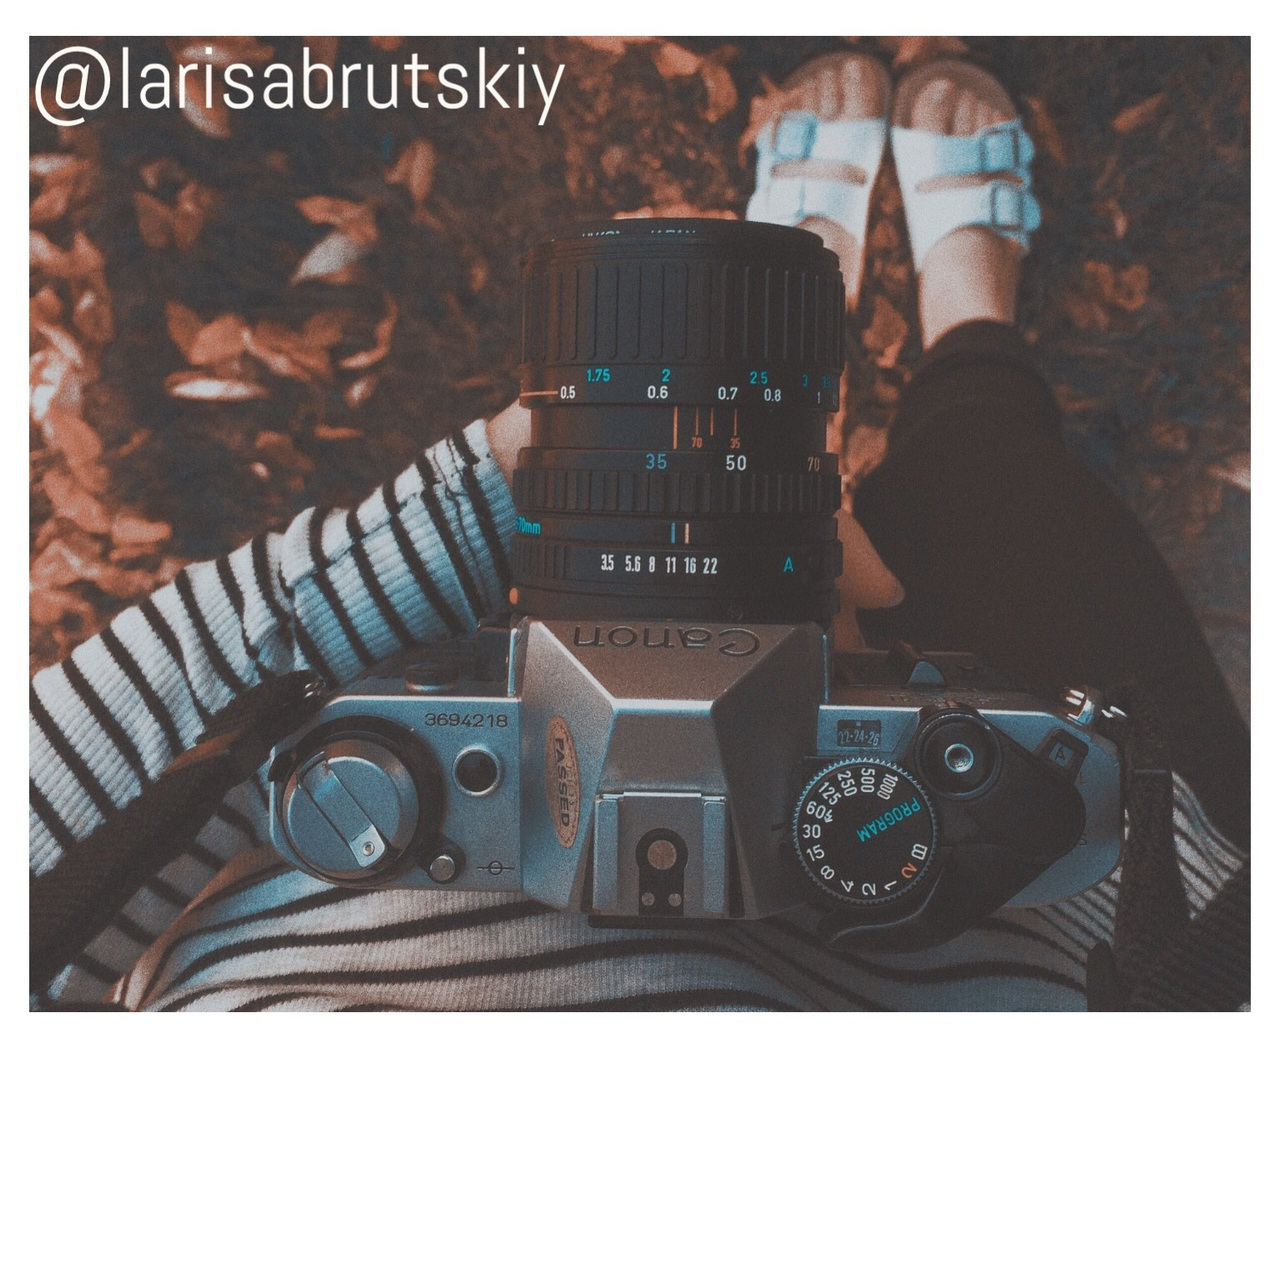 autumn, books, cali, camera, cute, explore, fall, fashion, girl, girls, grunge, halloween, leaves, love, morning, nature, night, photography, pretty, shoes, style, travel, usa, wanderlust, birkenstocks